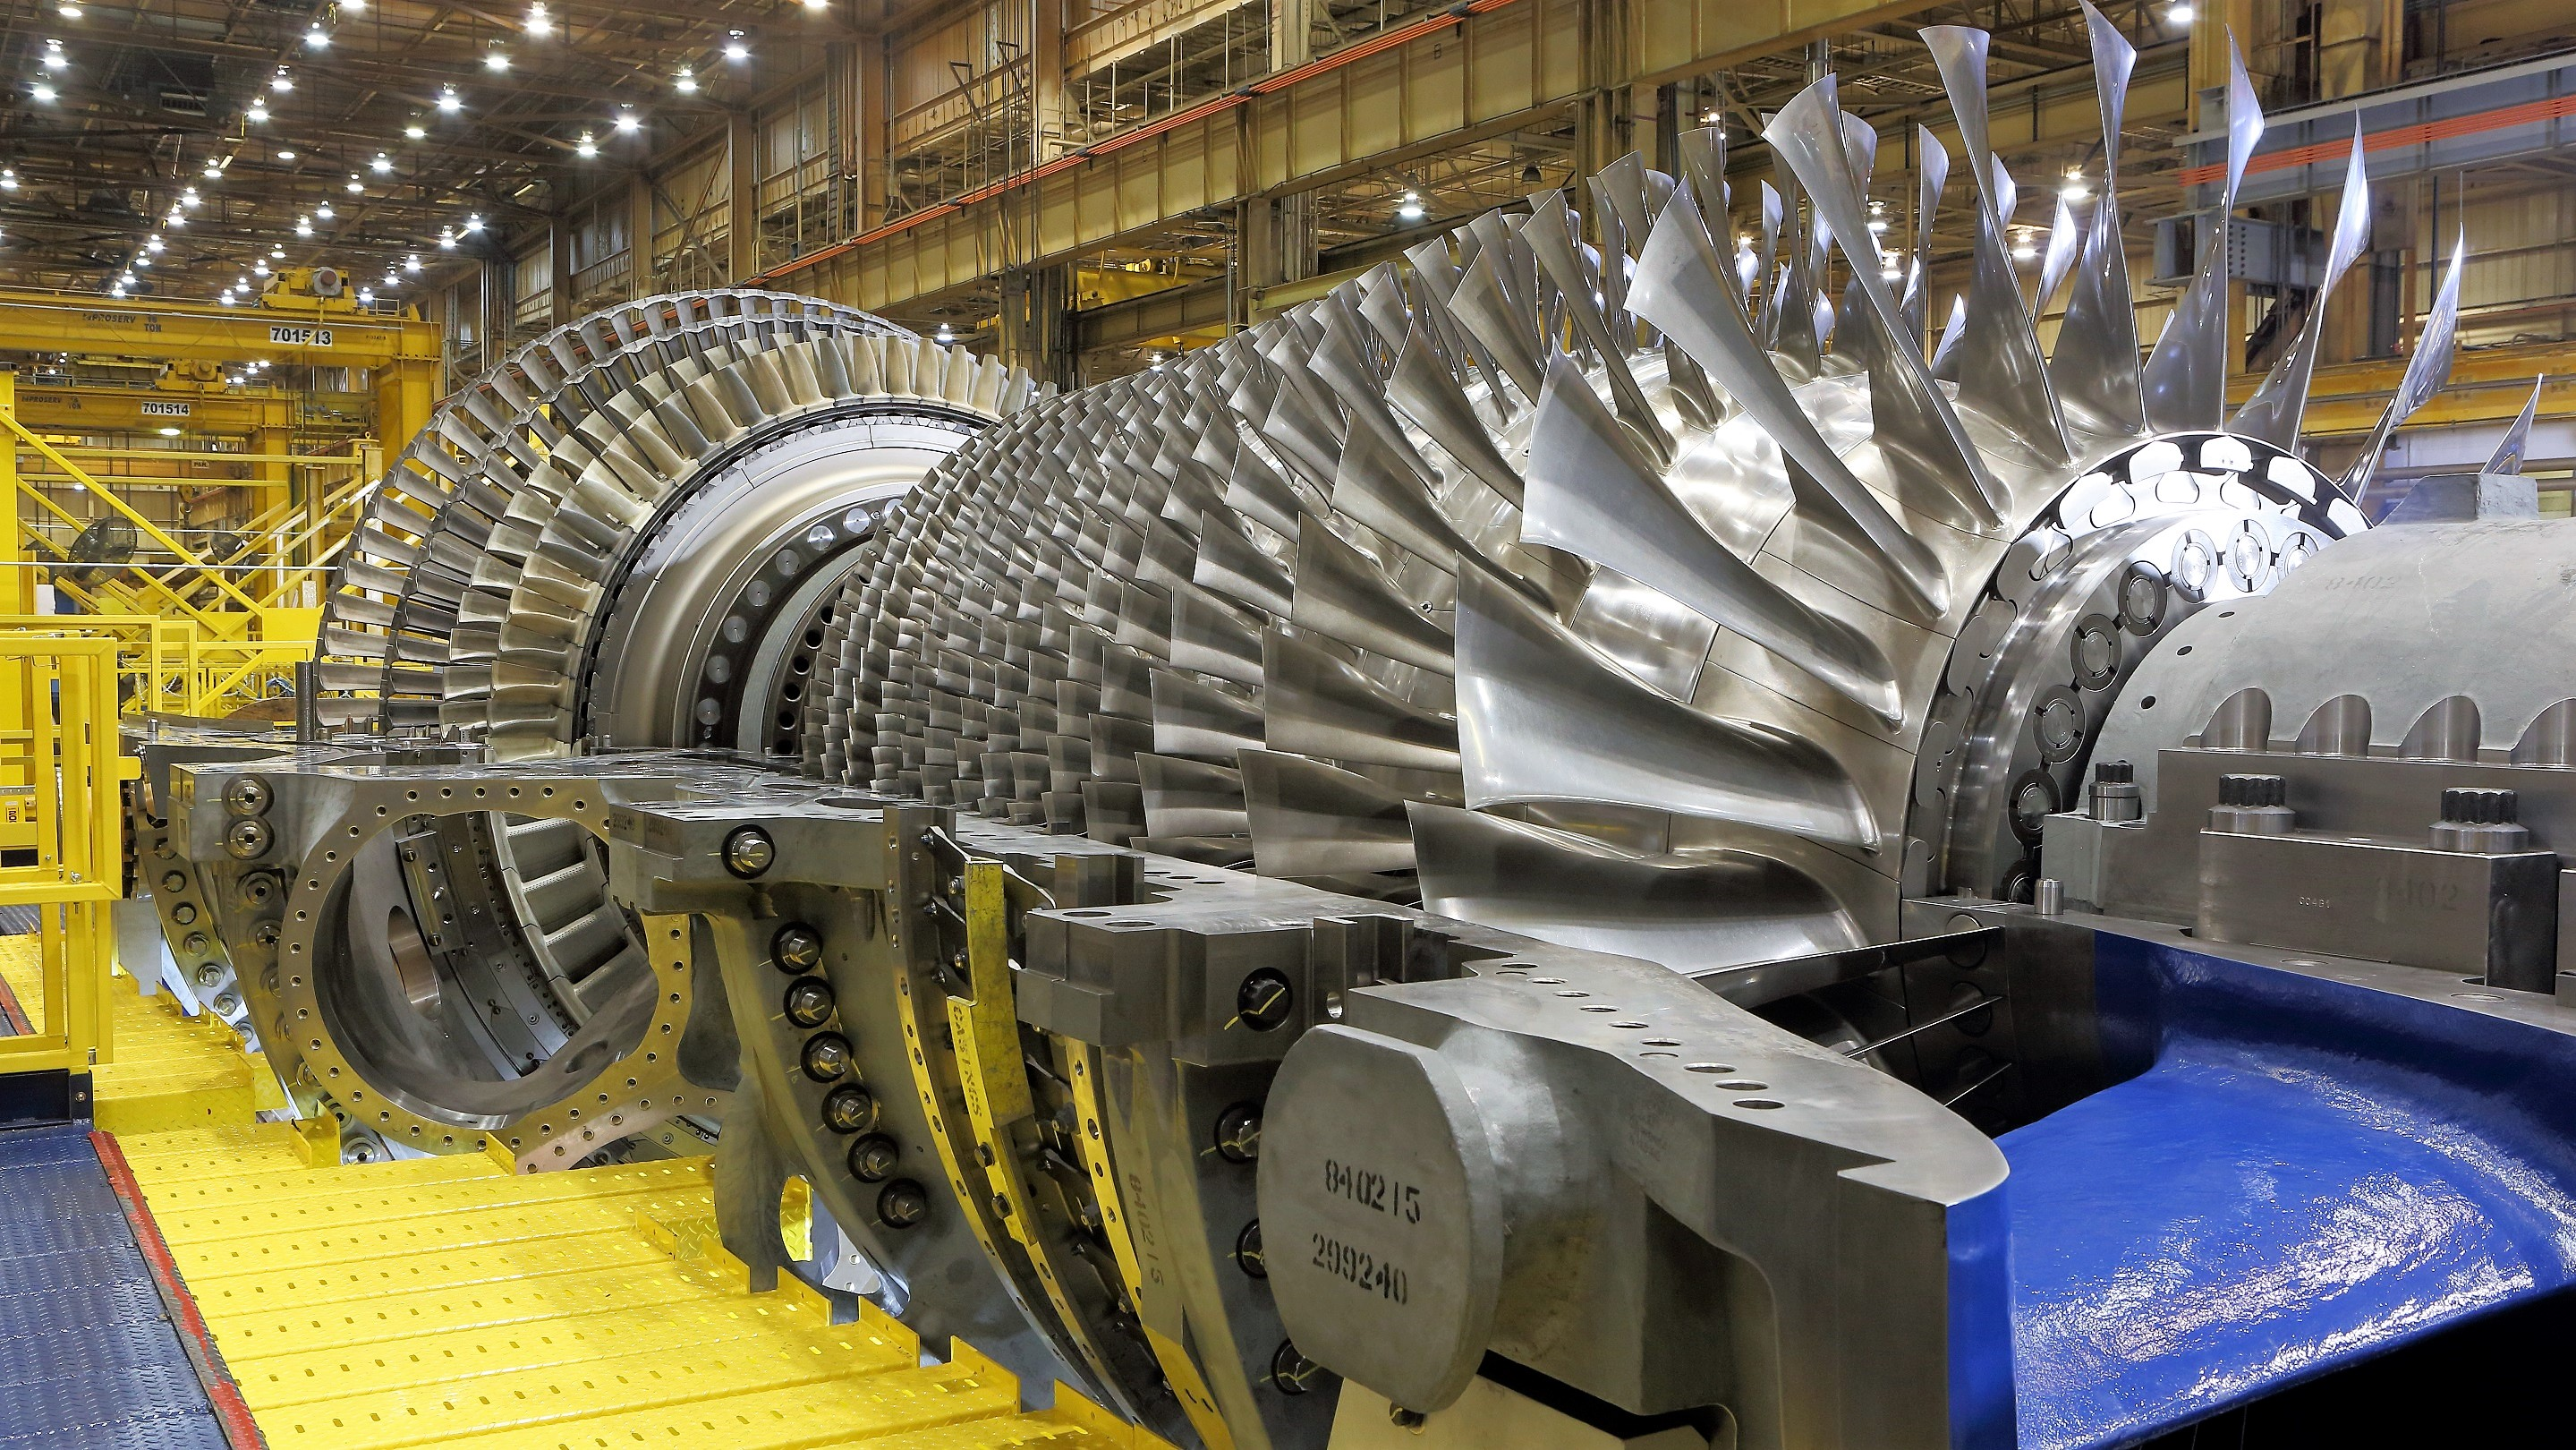 GE_turbine_Cropped.jpg